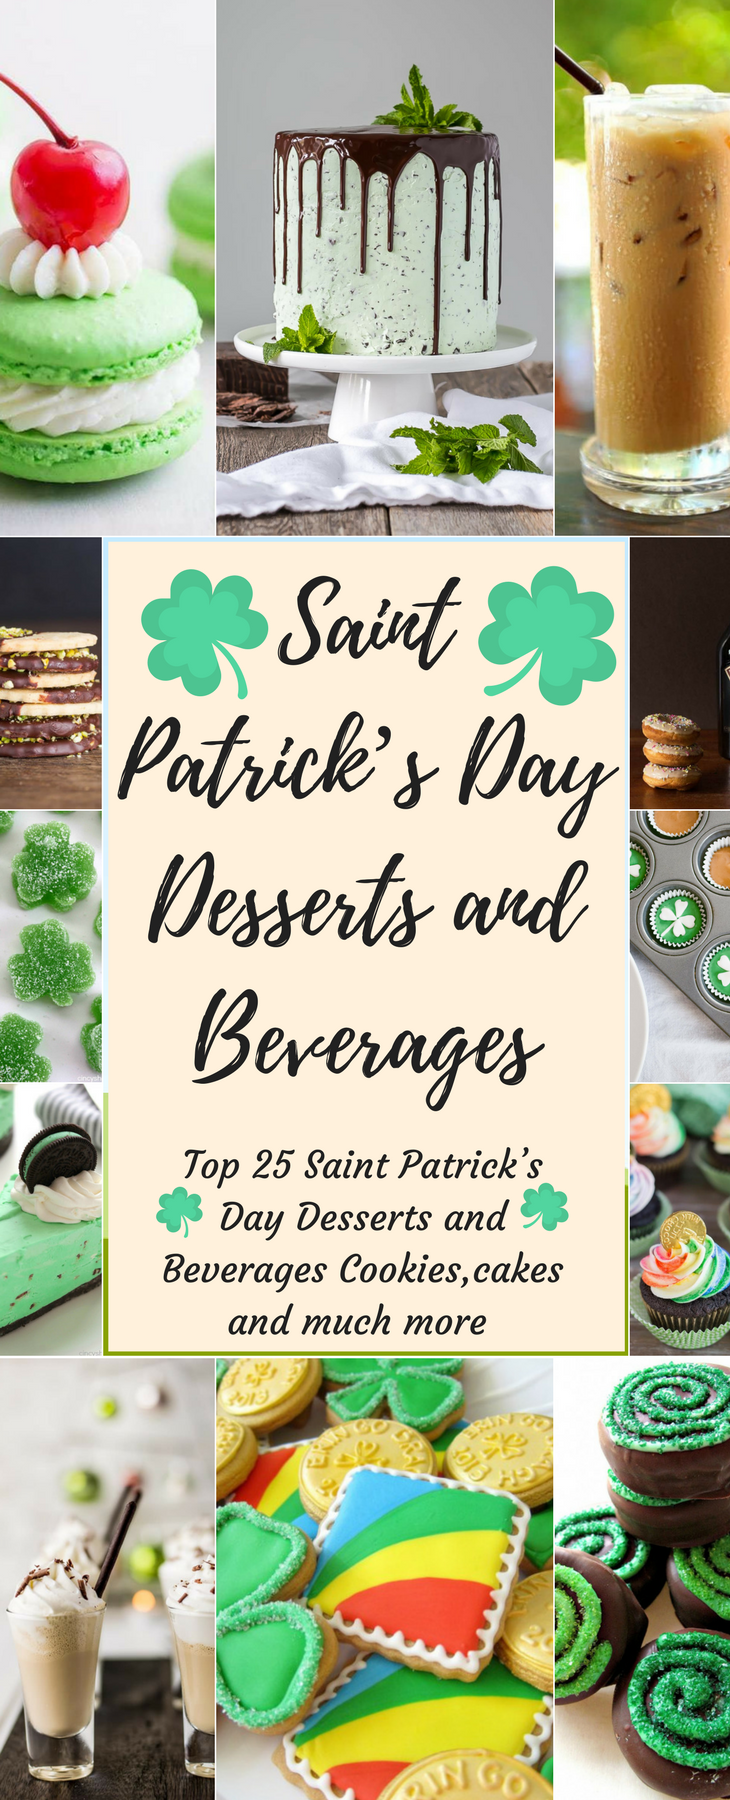 Saint Patrick's Day Dessert and Beverage Pin